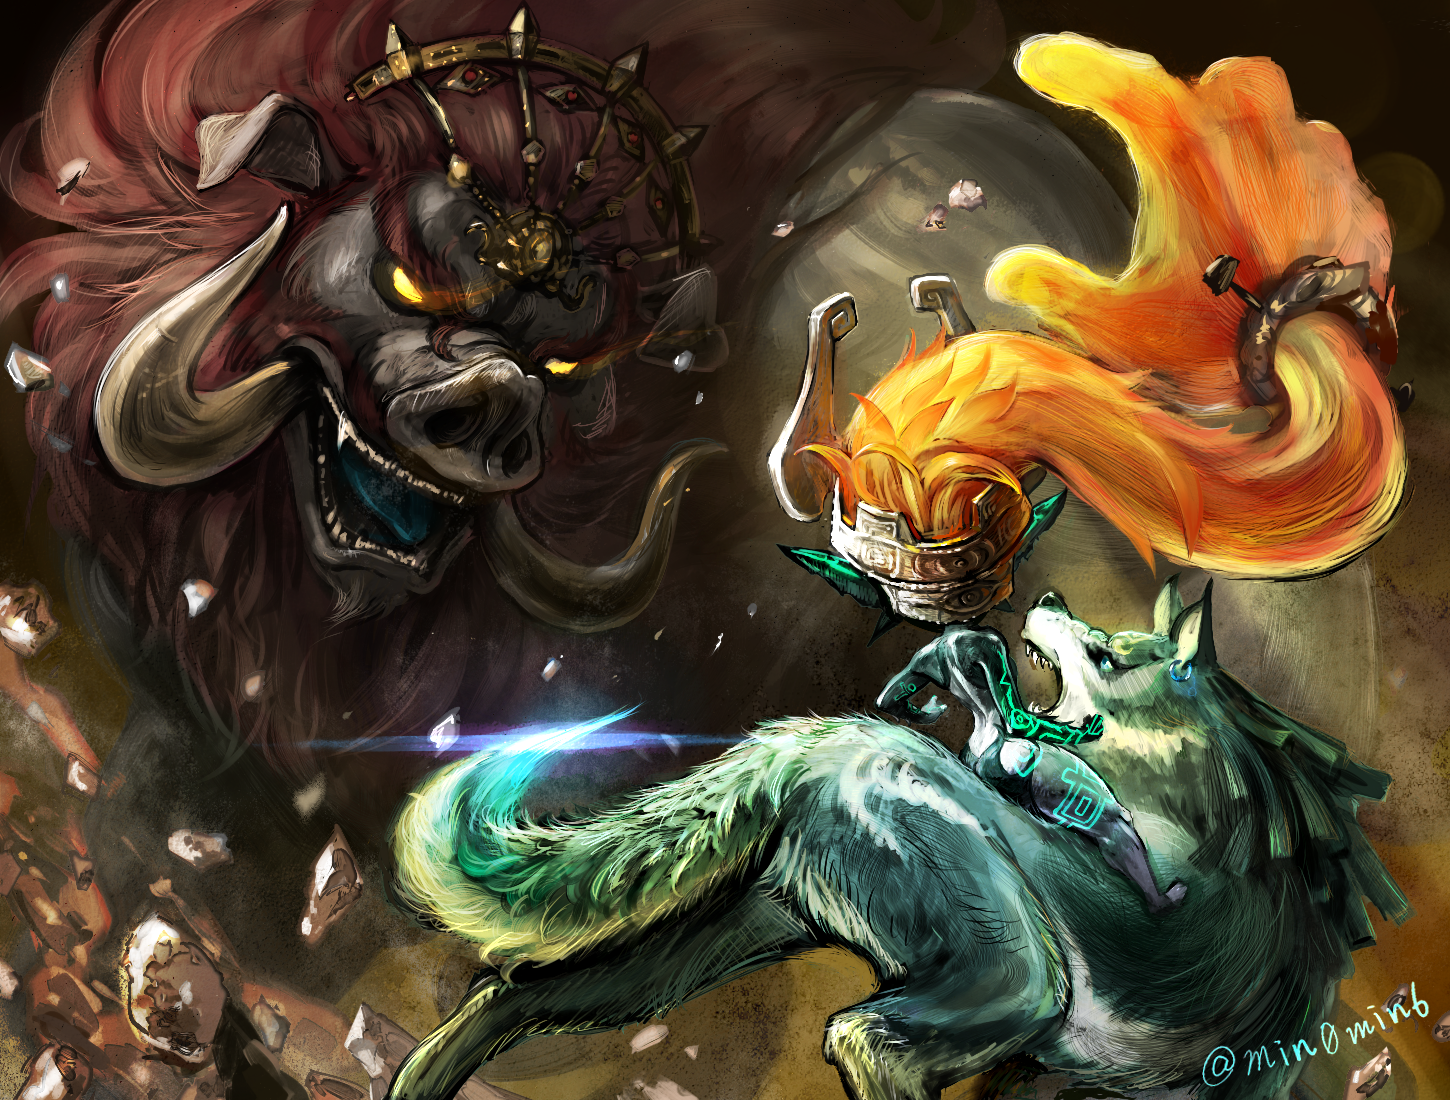 Link Midna Link And Ganon The Legend Of Zelda And 1 More